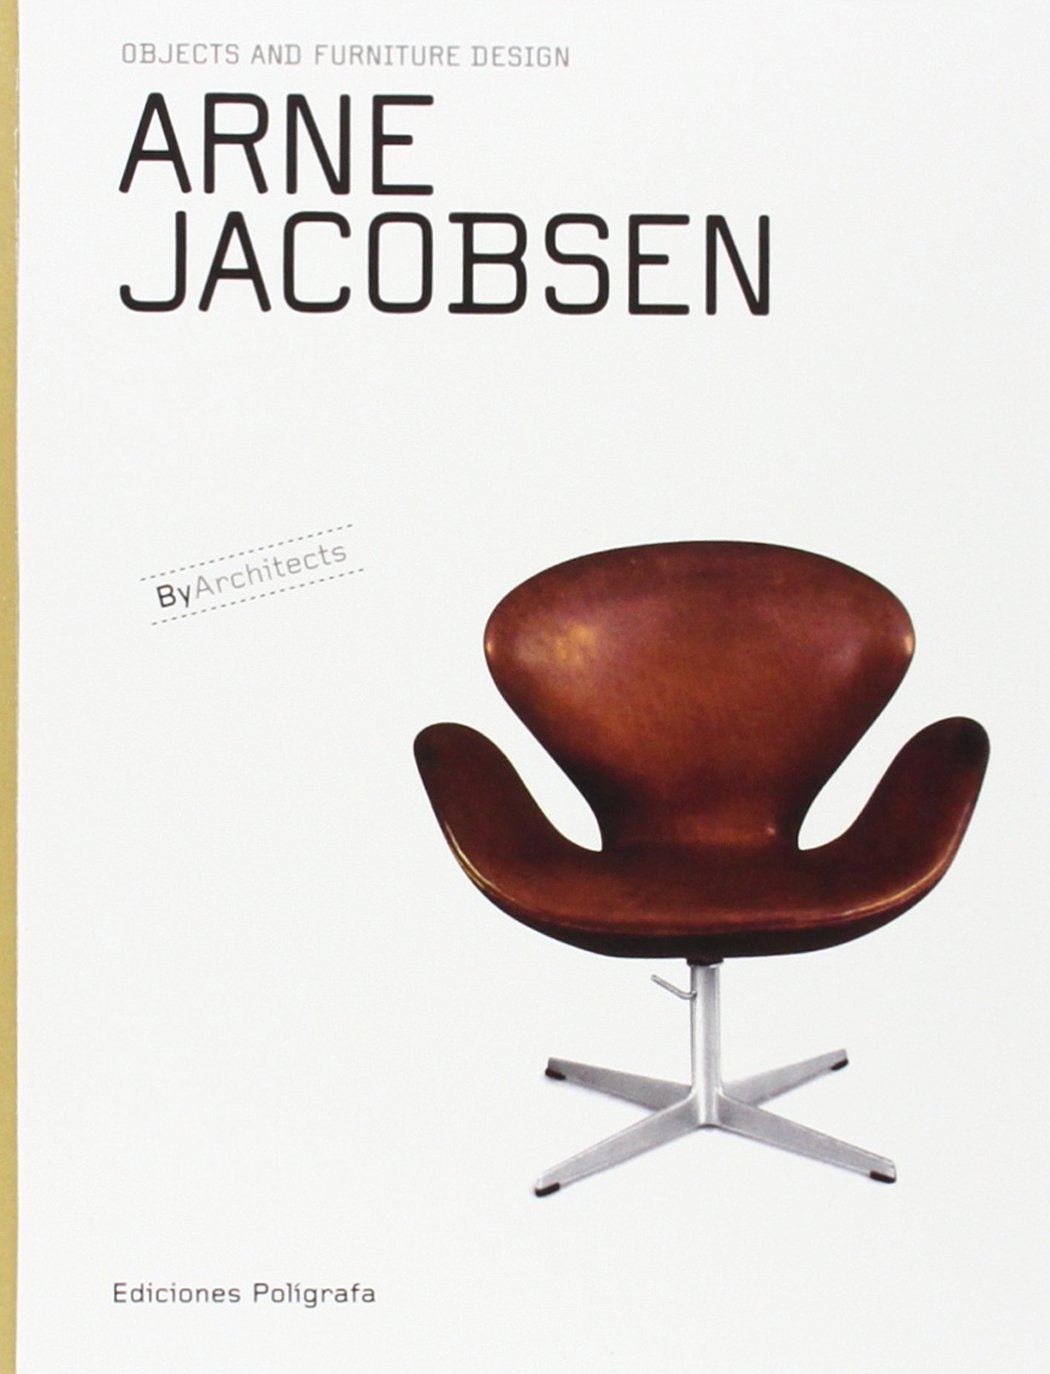 Amazoncom Arne Jacobsen Objects and Furniture Design Objects